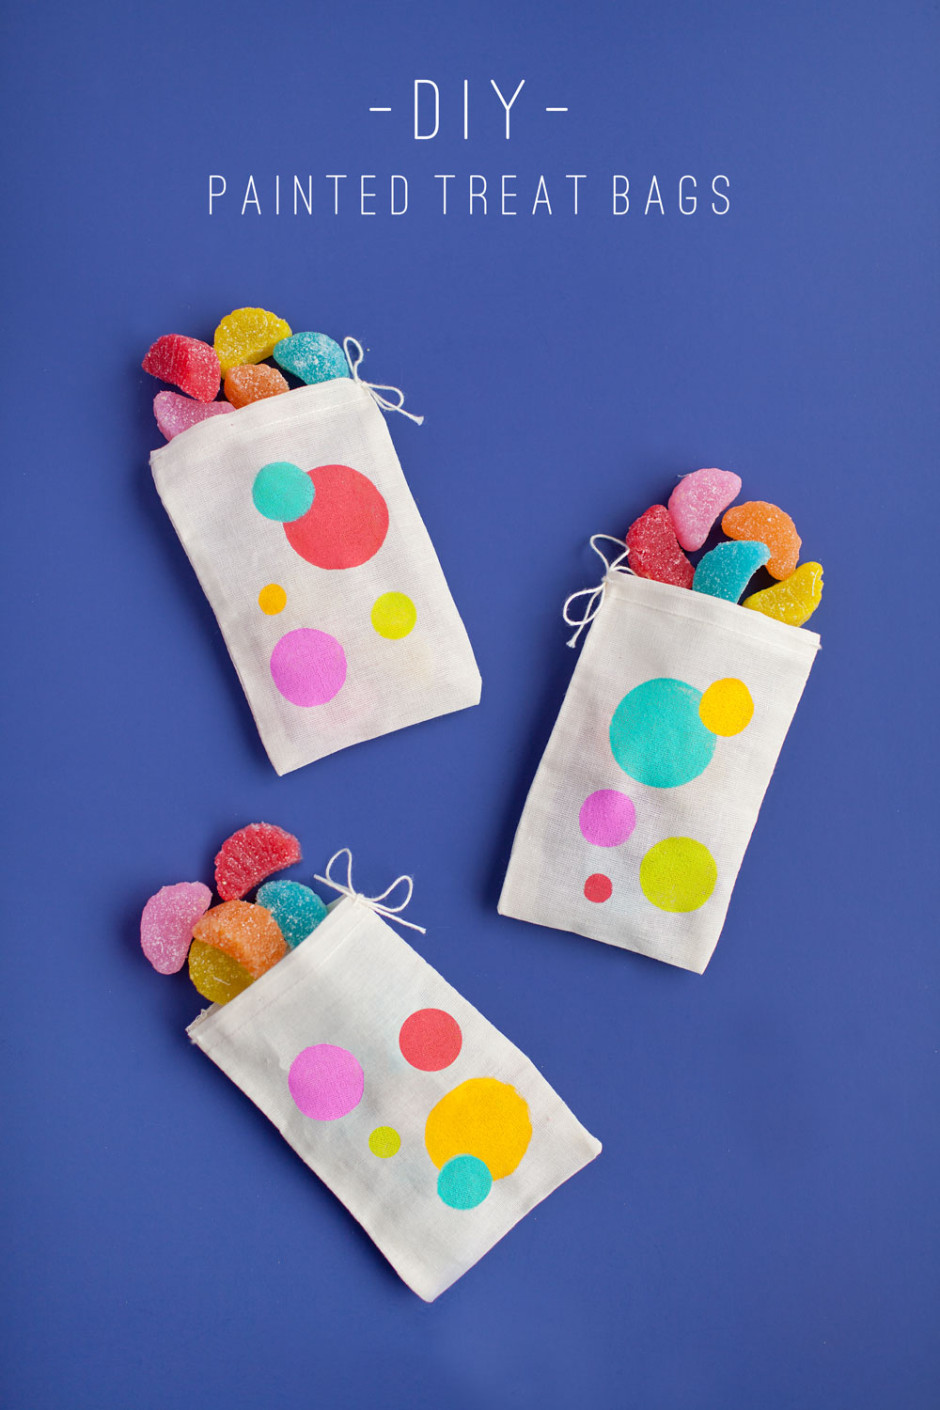 painted-treat-bags